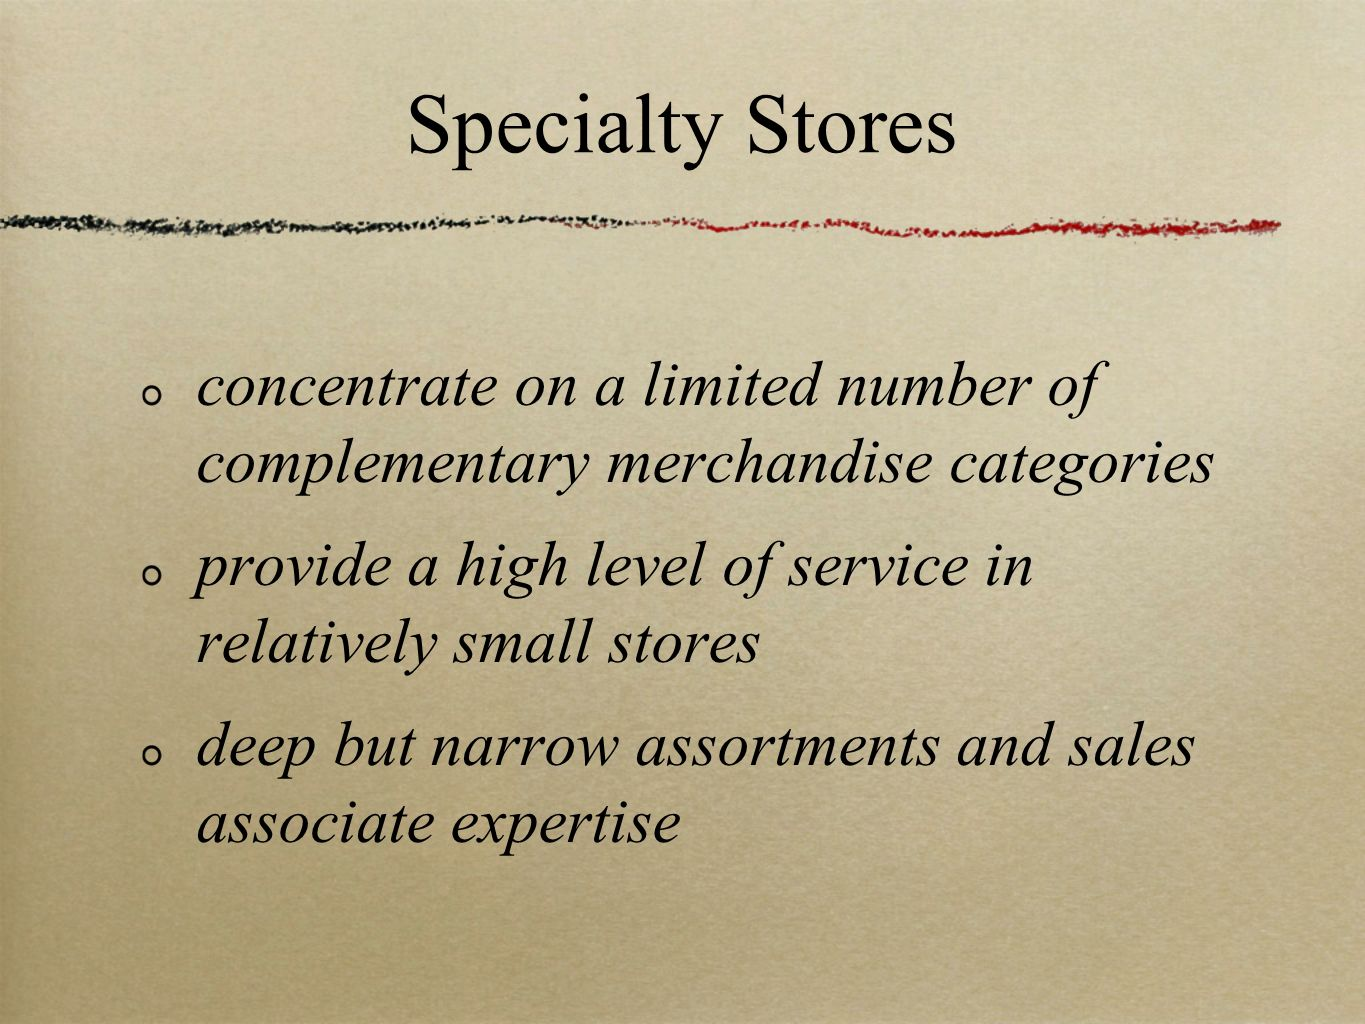 Specialty Stores concentrate on a limited number of complementary merchandise categories.